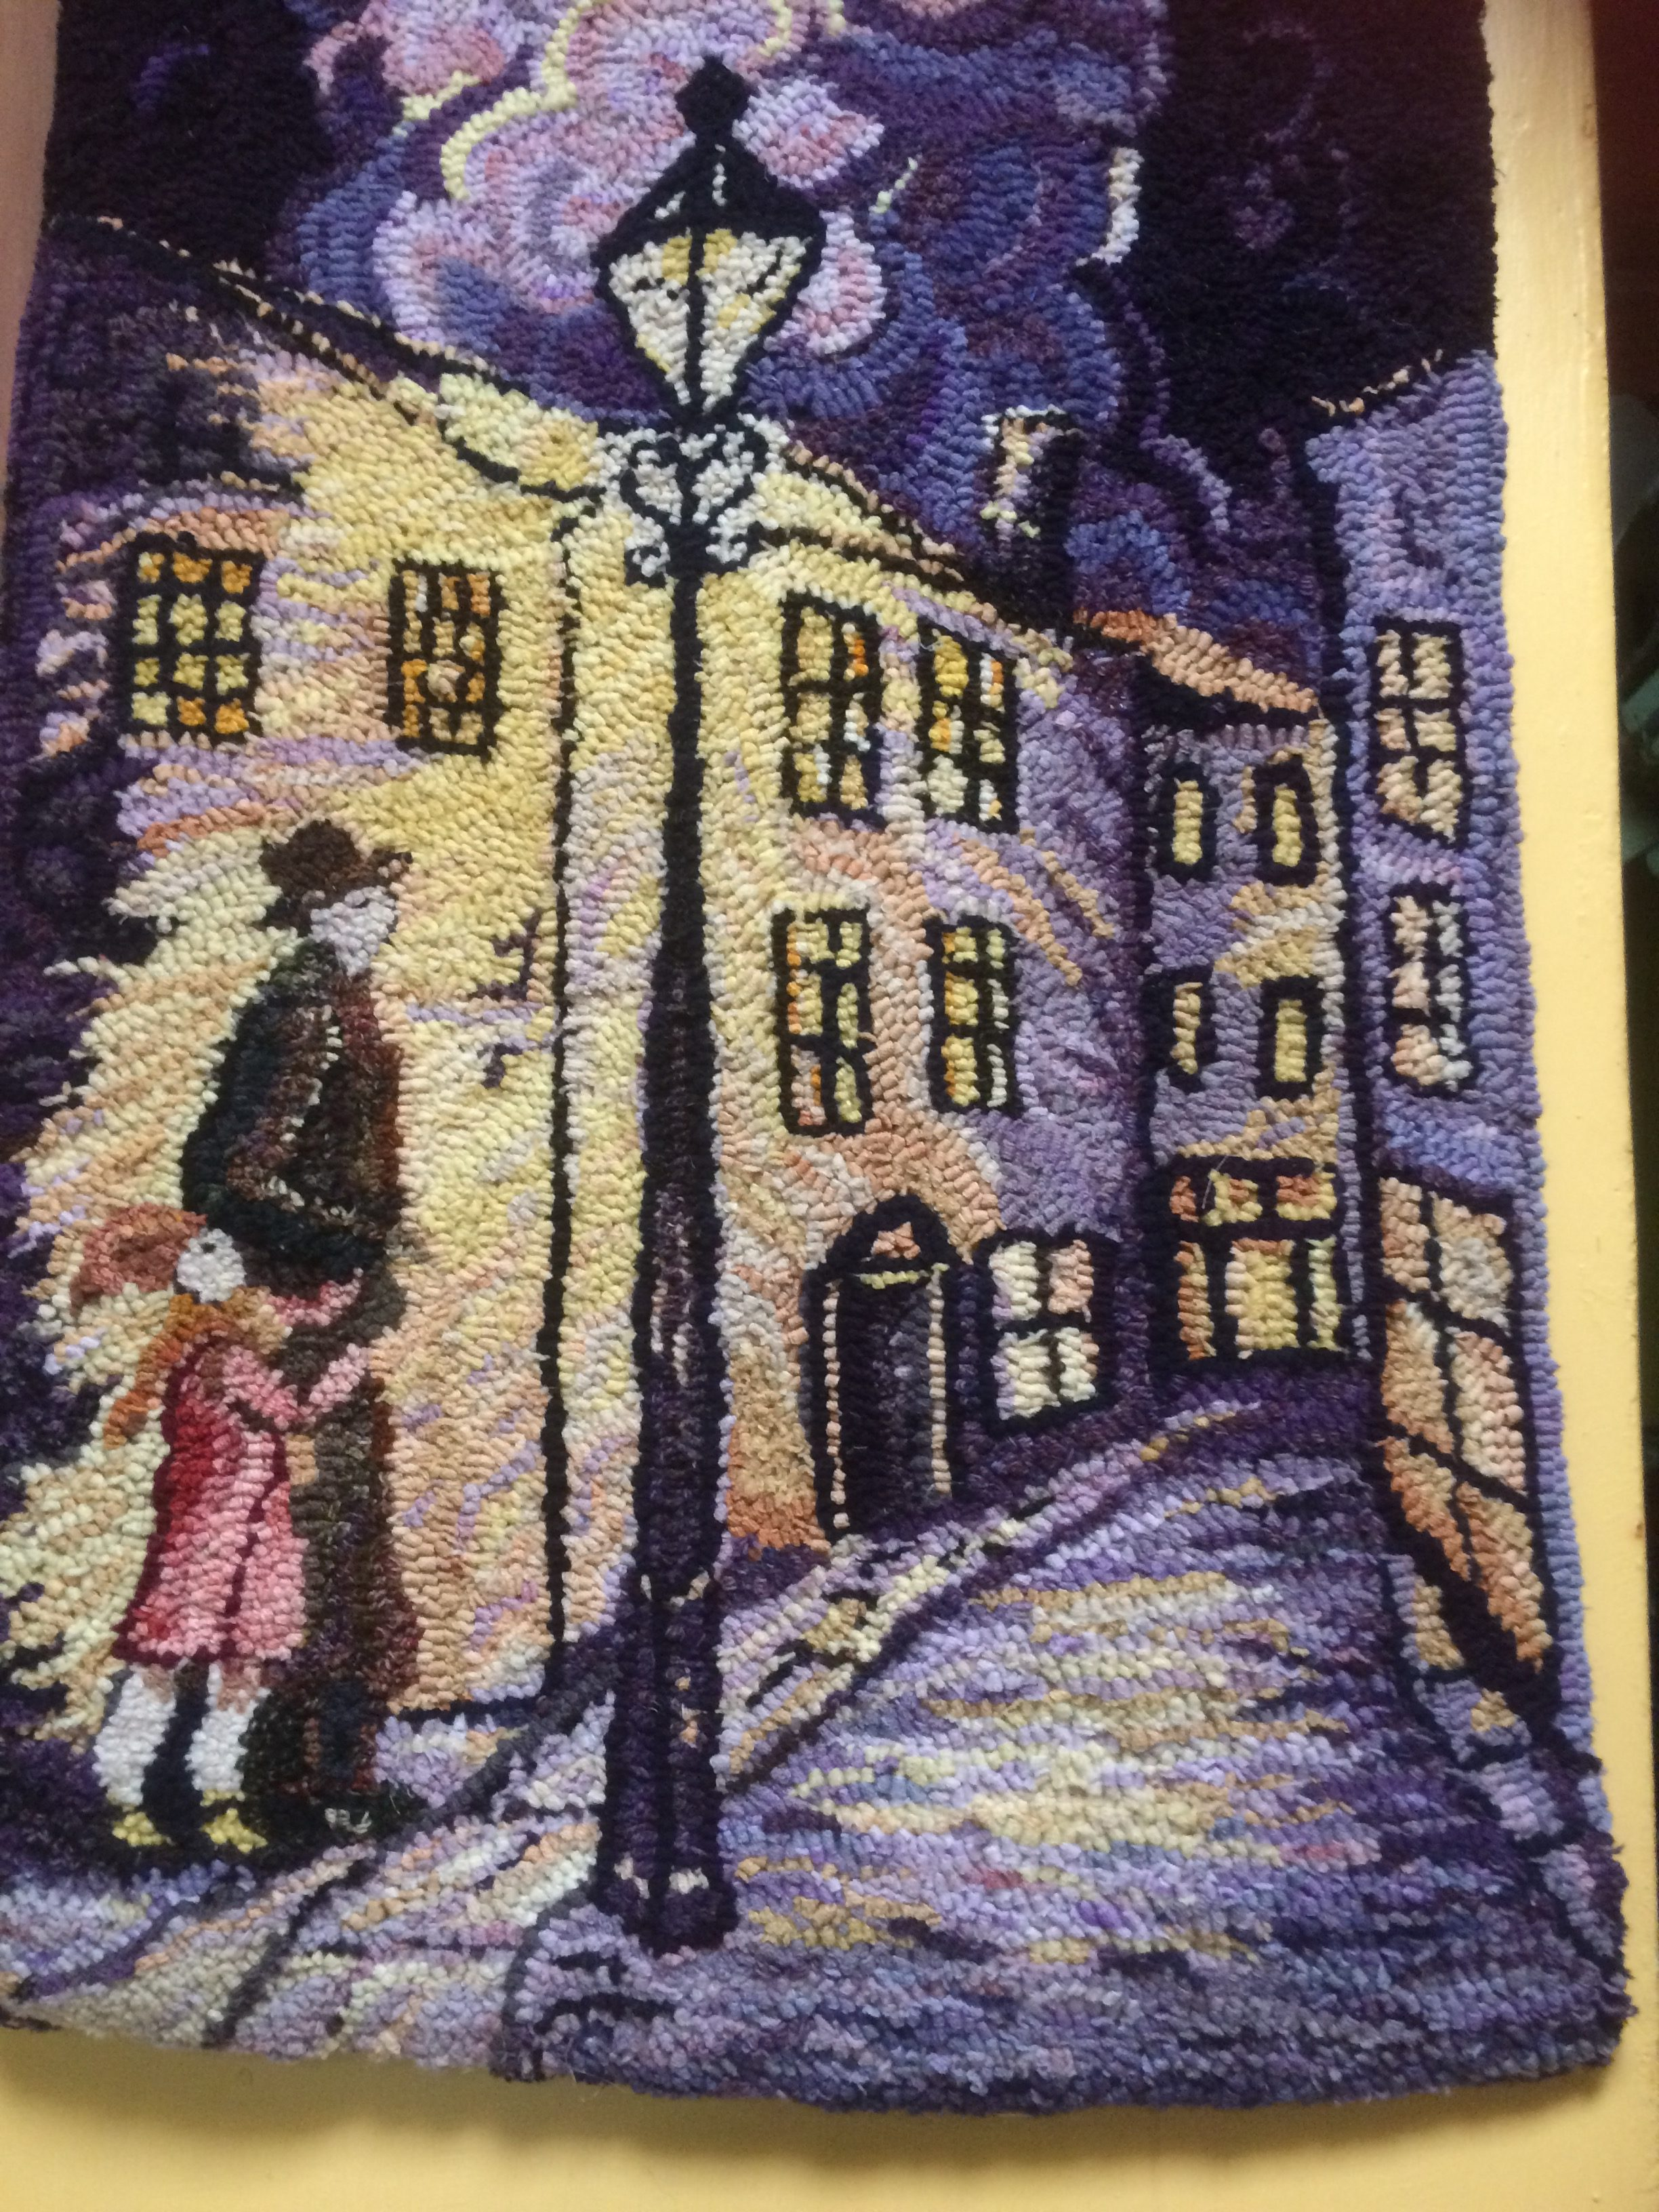 Heather Guiding Light artwork of blind man with daughter in the street, hooky rag rugging